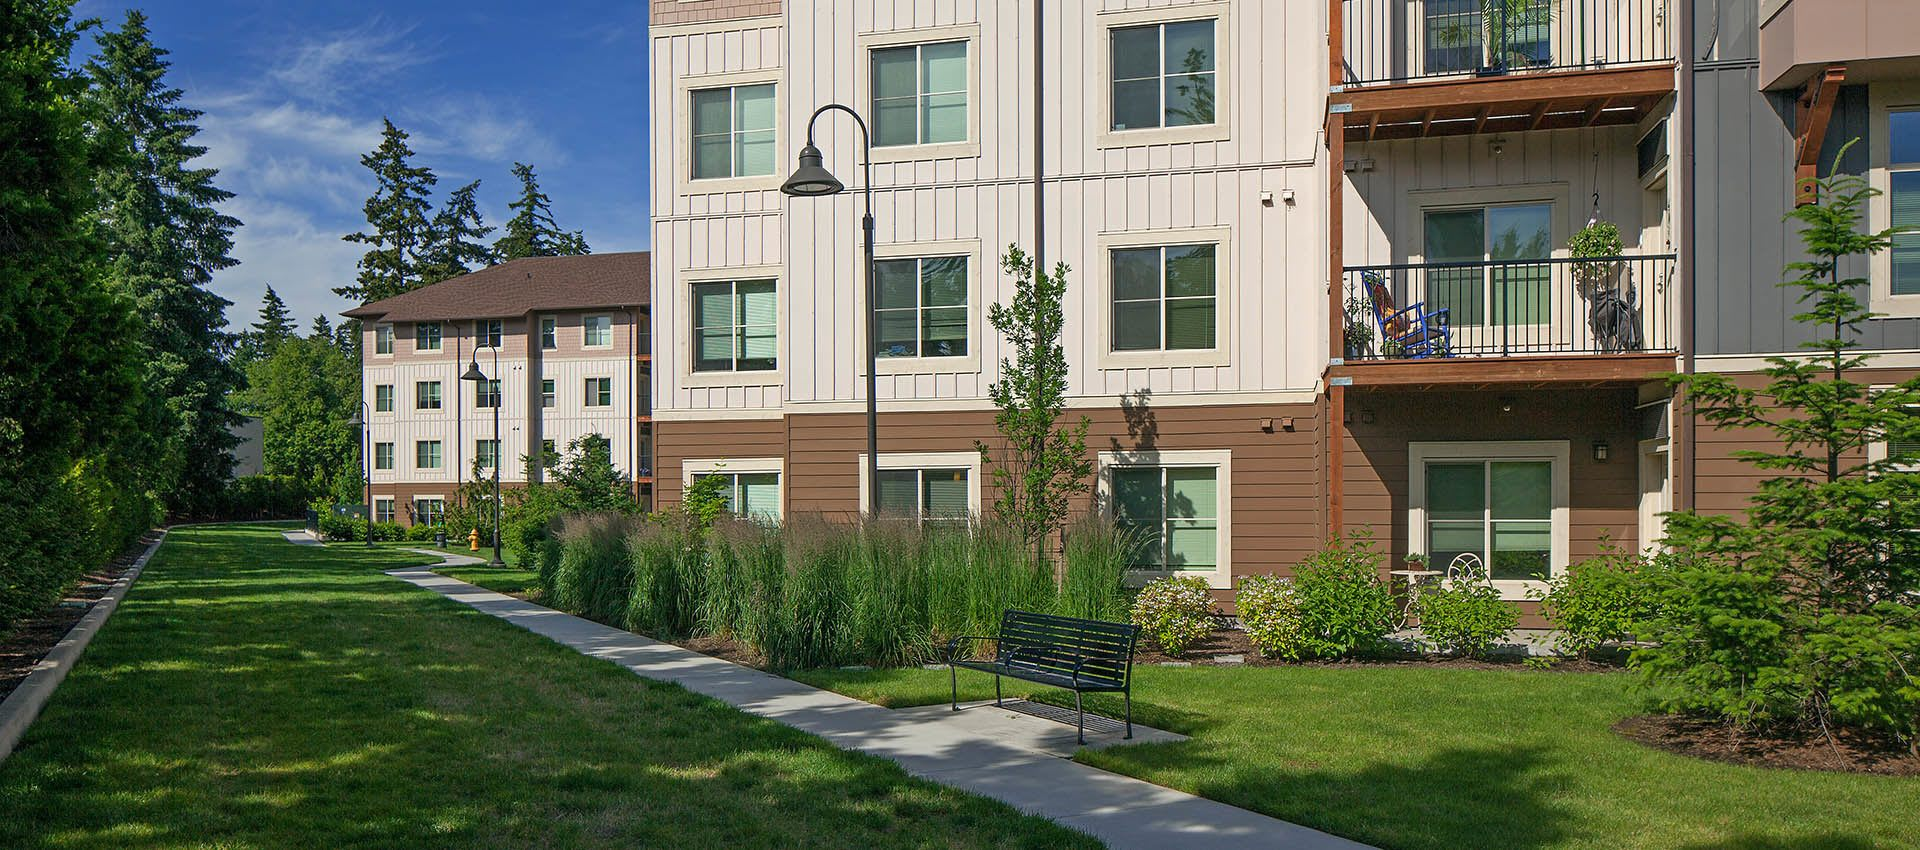 Apartment Exterior With Nice Landscaping at Eddyline at Bridgeport in Portland, OR